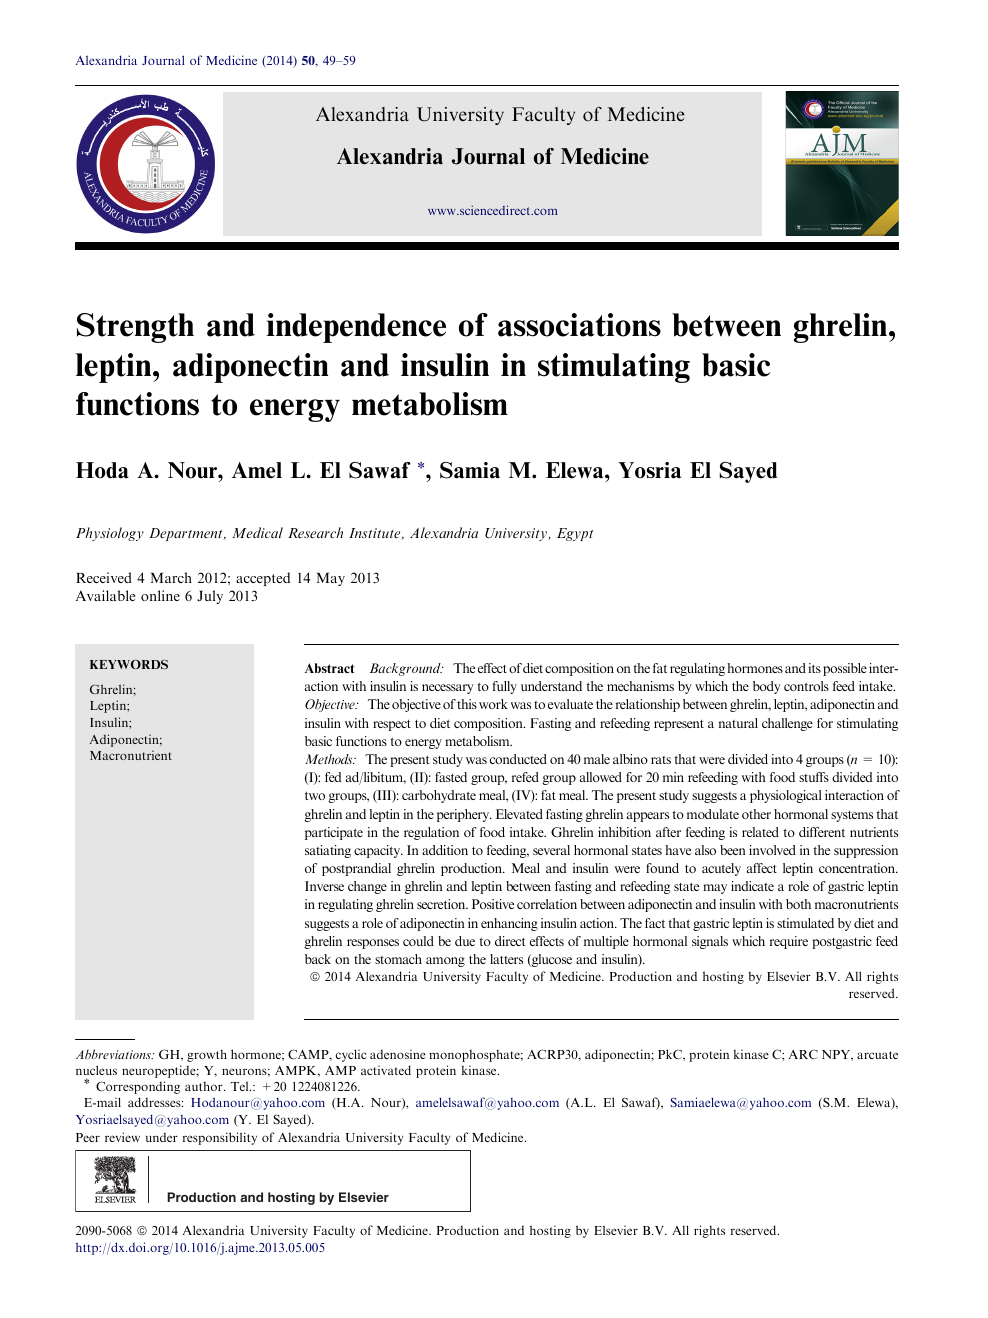 Strength and independence of associations between ghrelin, leptin